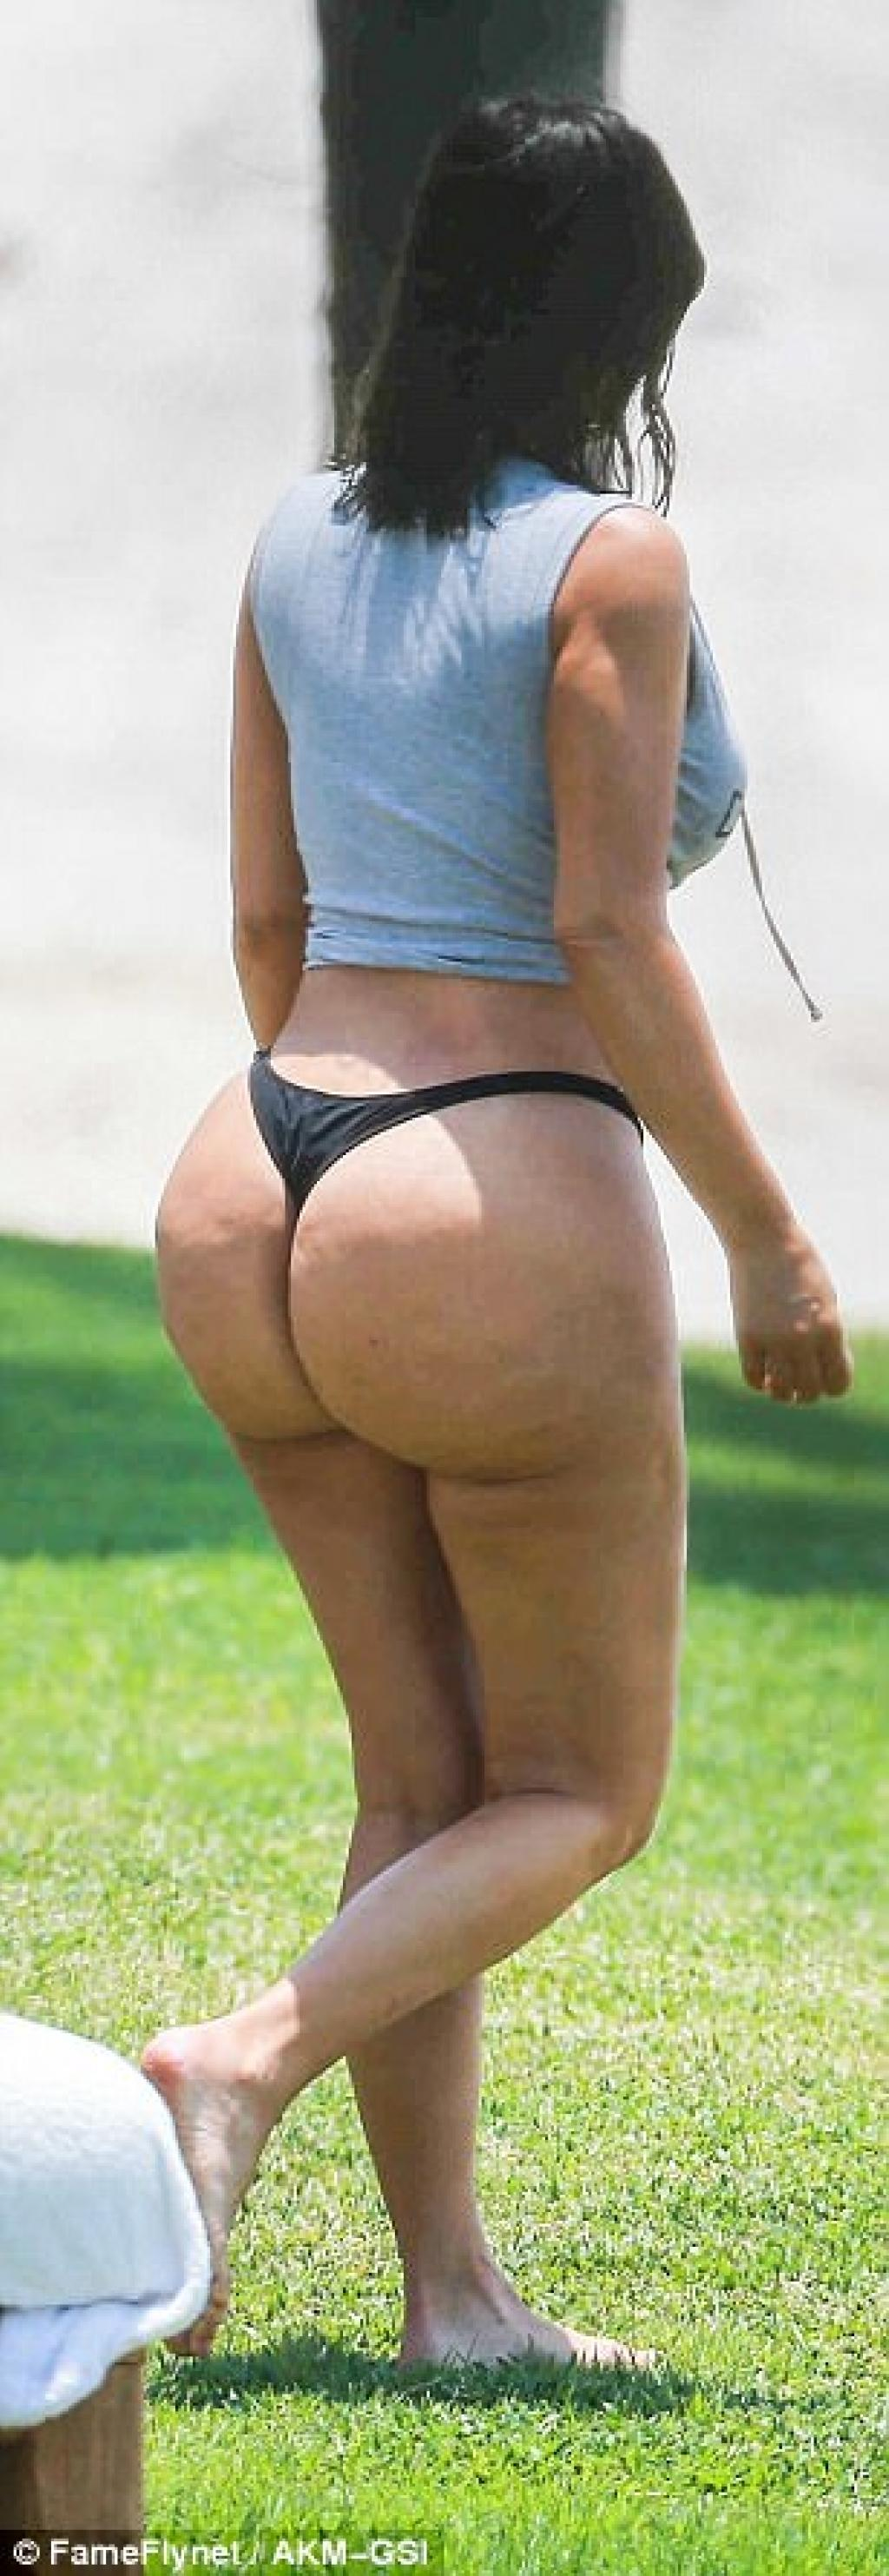 Perfect! I´m latinas bare ass does